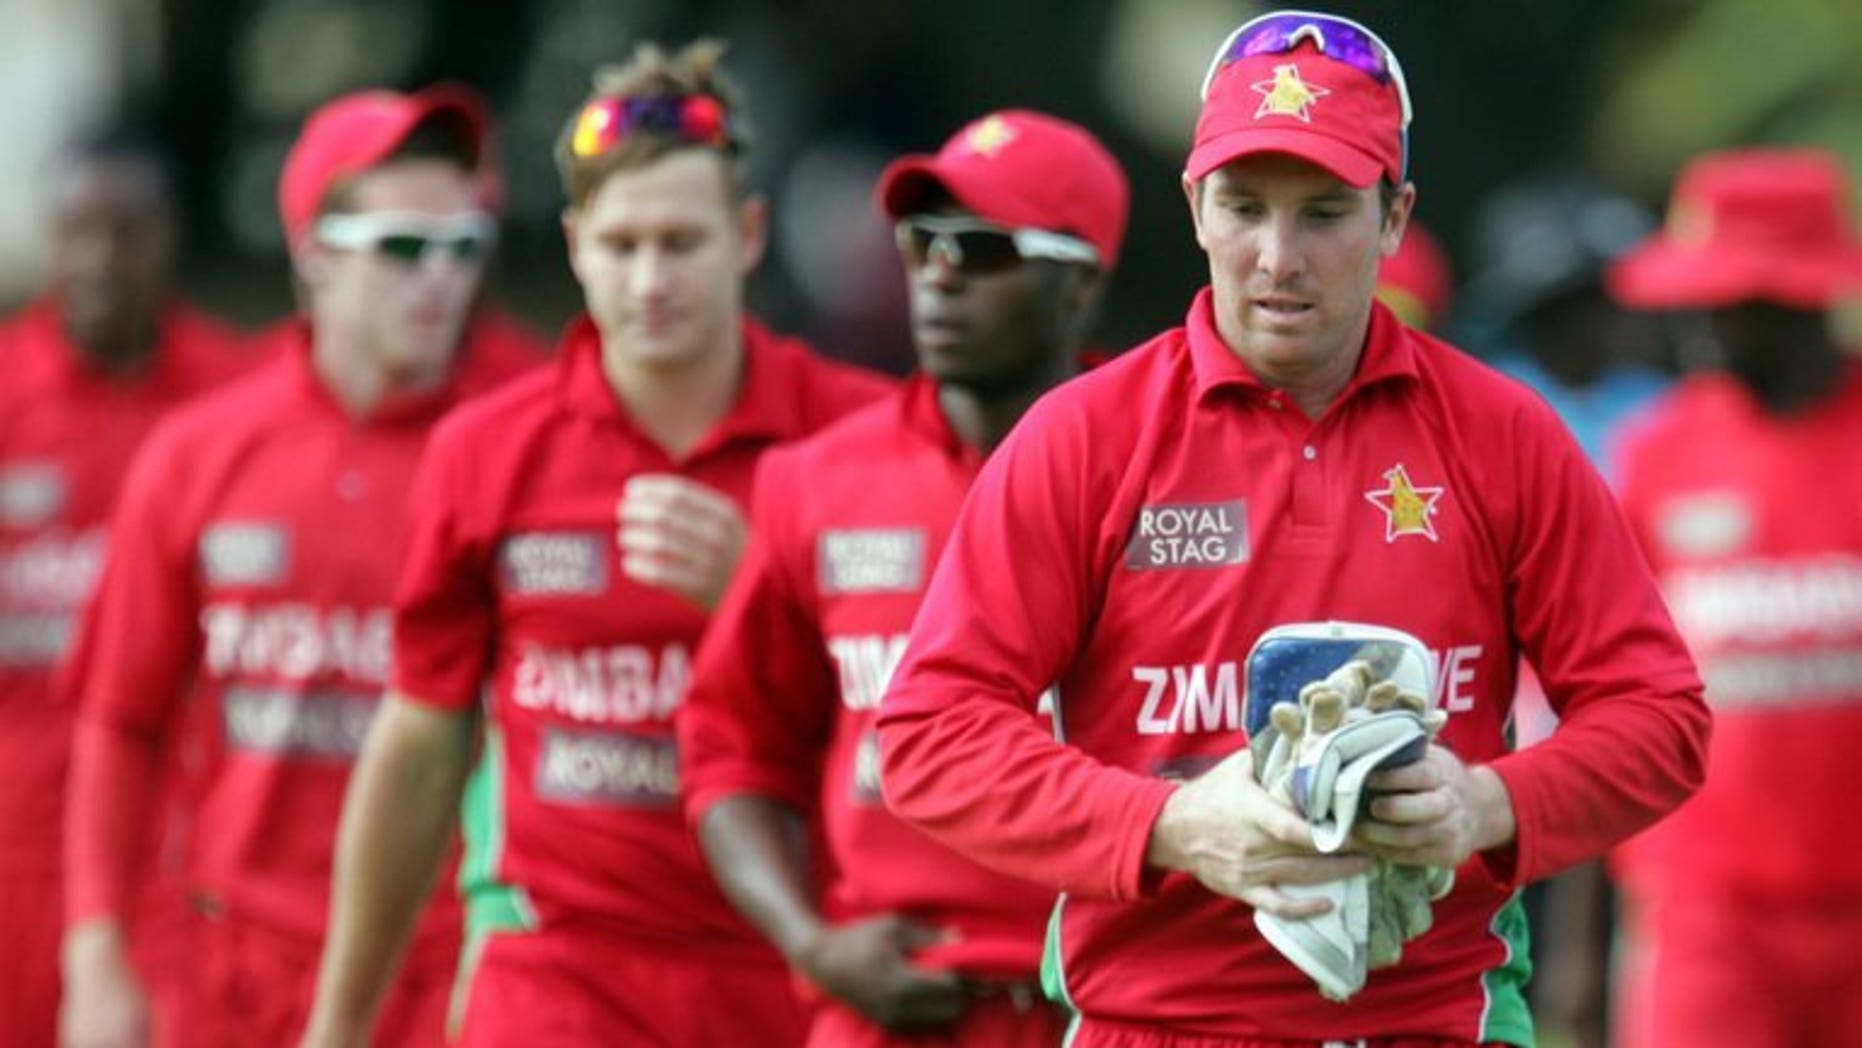 Zimbabwe's captain Brendan Taylor leaves the field with teammates at Queens Sports Club on August 3, 2013 in Harare. Zimbabwe's cricketers have returned to training after a brief stand-off with Zimbabwe Cricket over unpaid wages and the value of future contracts, ensuring that Pakistan's tour of the country will go ahead as planned.